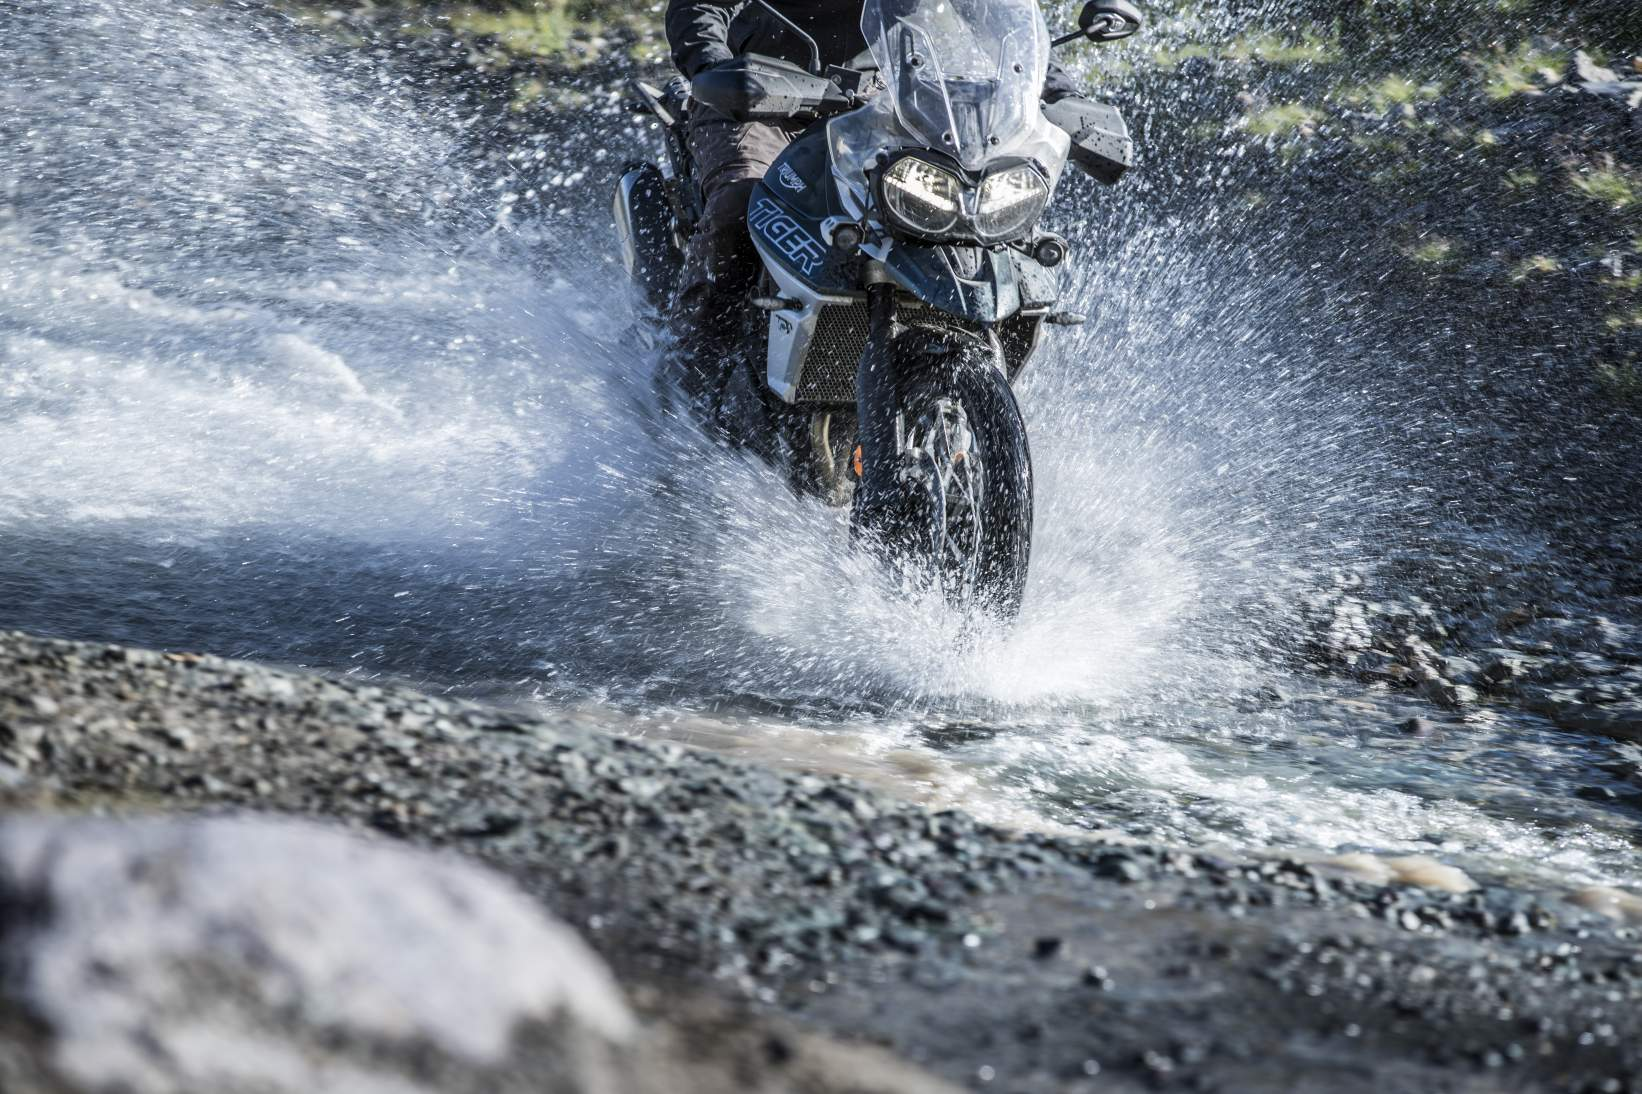 Tiger 800 water crossing as part of the training at the Triumph Adventure Experience